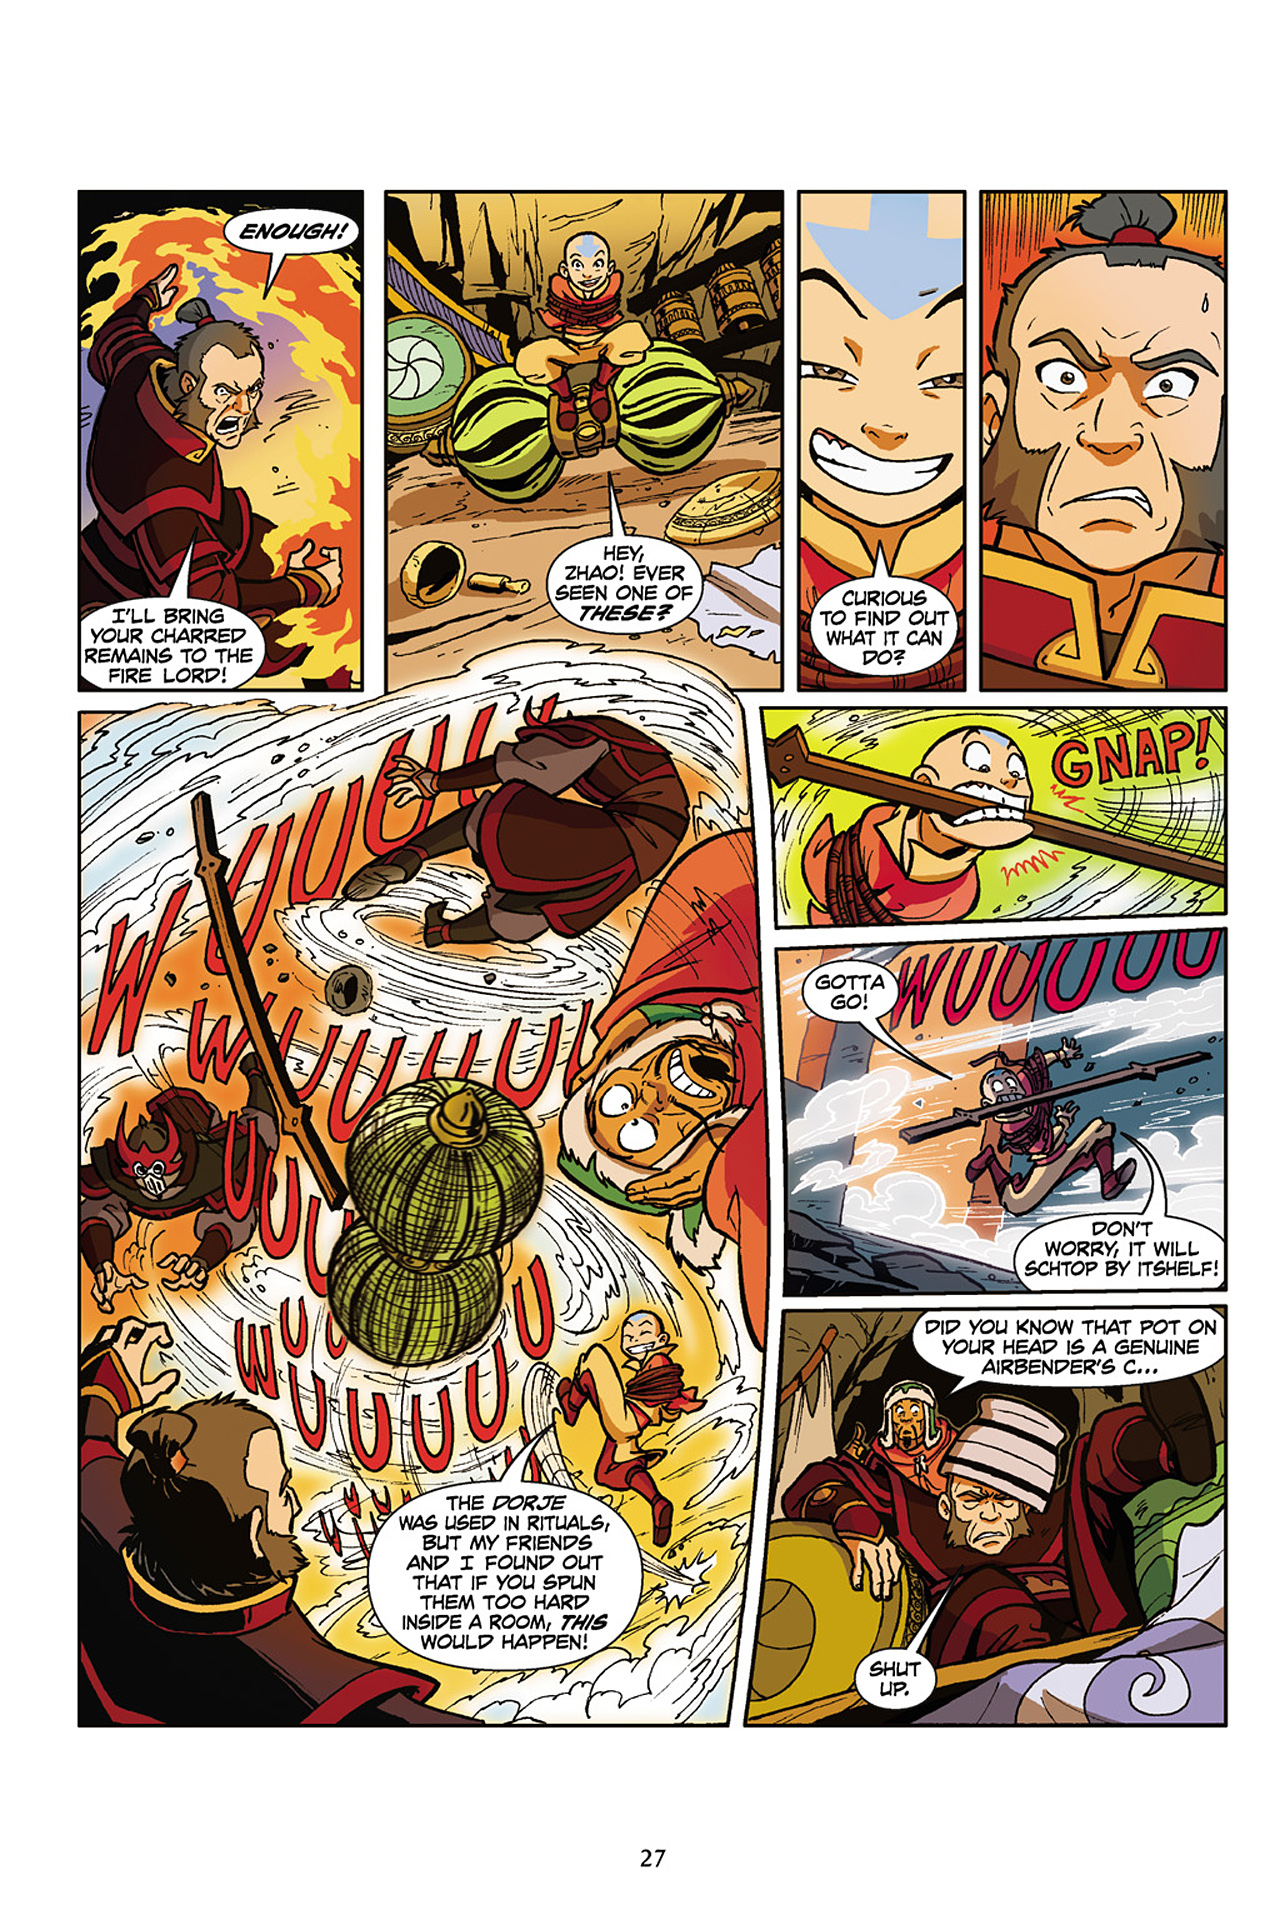 Nickelodeon Avatar: The Last Airbender - The Lost Adventures chap full pic 28